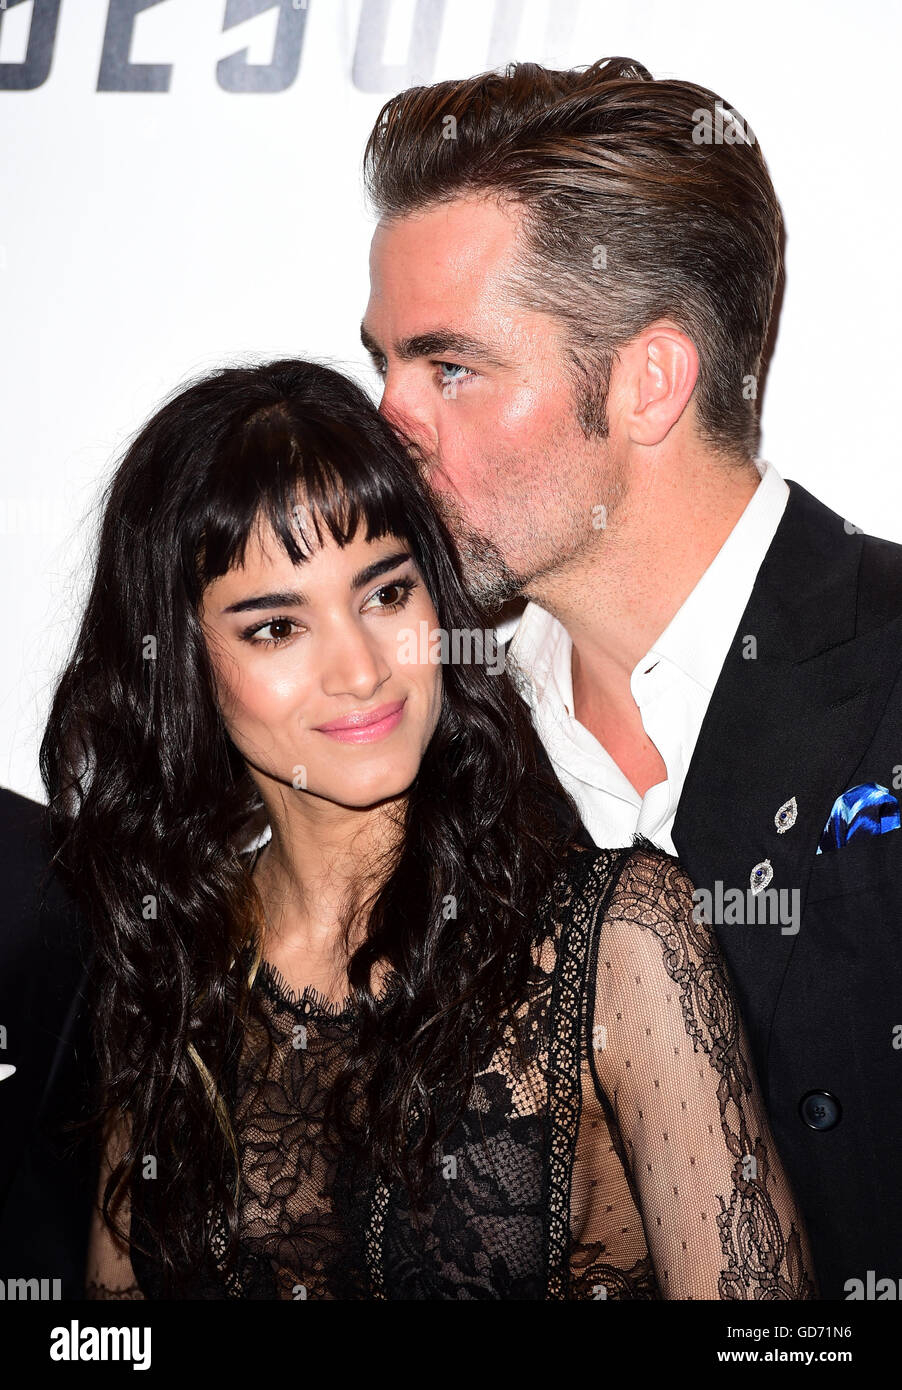 Sofia Boutella And Chris Pine Attending The Premiere Of